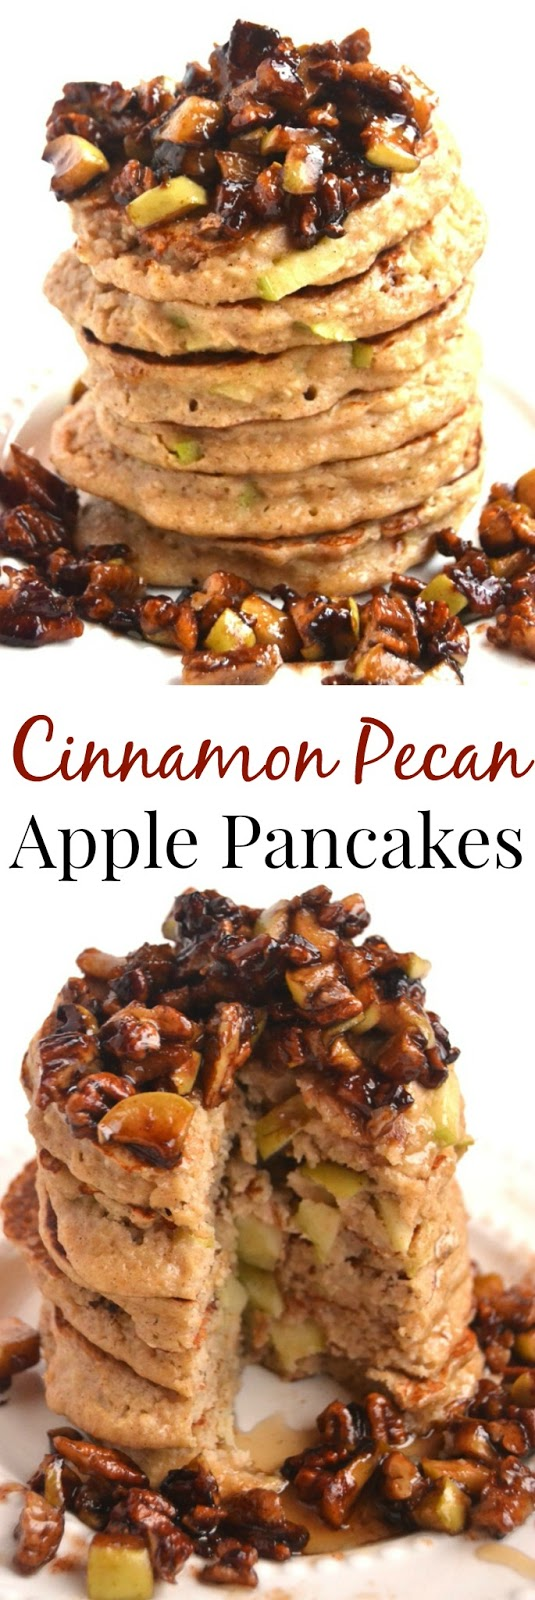 Cinnamon Pecan Topped Apple Pancakes make the perfect weekend breakfast! They are whole-grain, protein rich and are topped with the most delicious cinnamon and brown sugar sautéed apples and pecans. www.nutritionistreviews.com